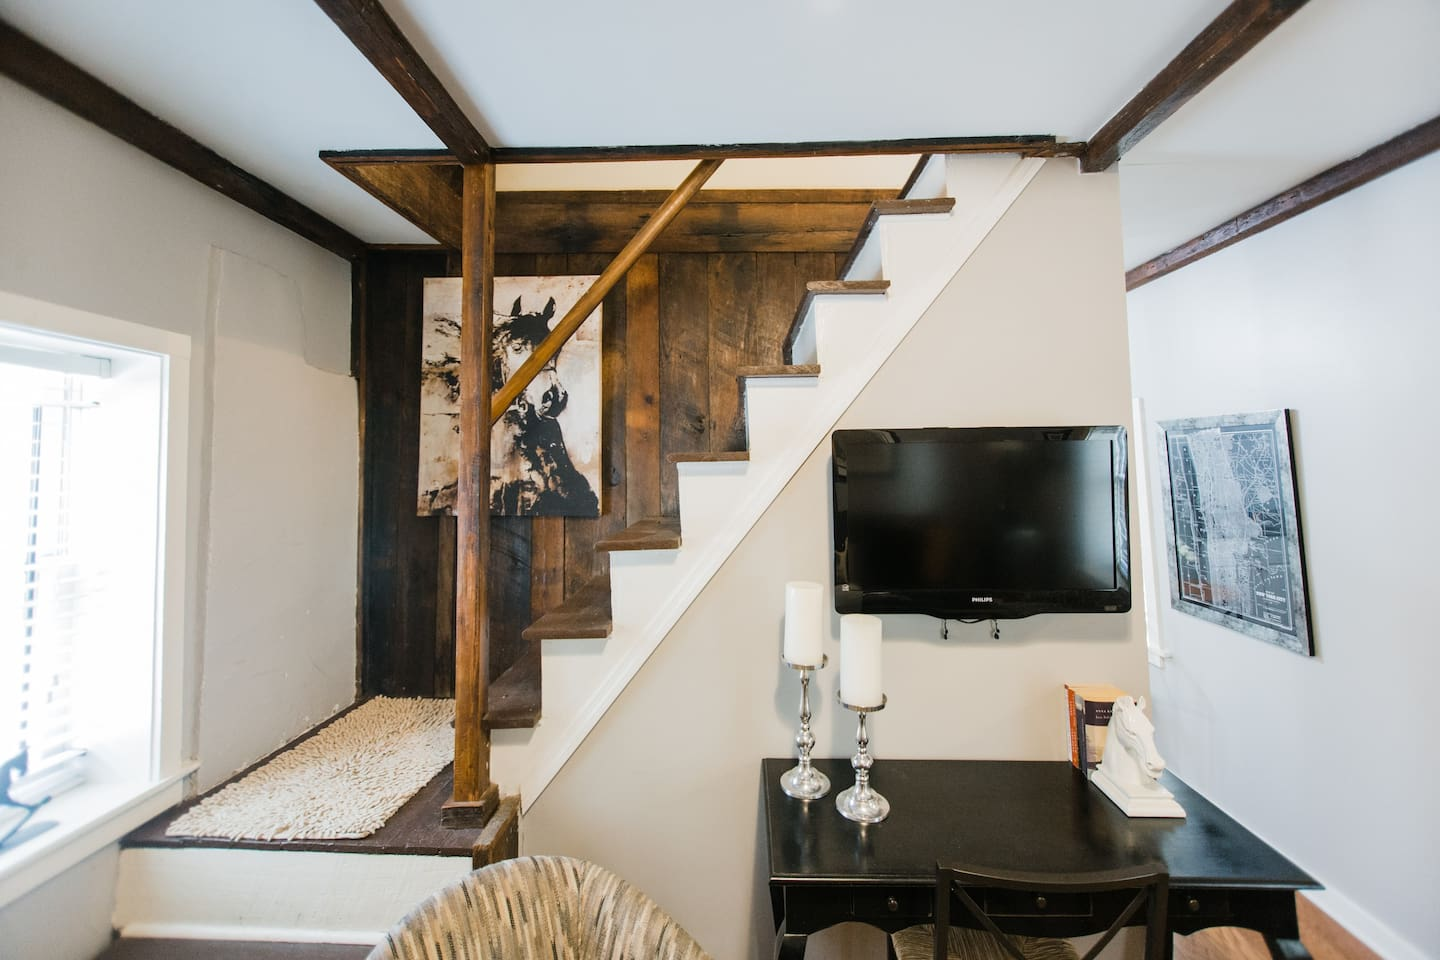 Exposed beams and rough-hewn paneling are remnants of a bygone and historic era when the carriage house was just that, a house for the carriage and the fine folks who cared for the horse drawn type and then the horse powered type.